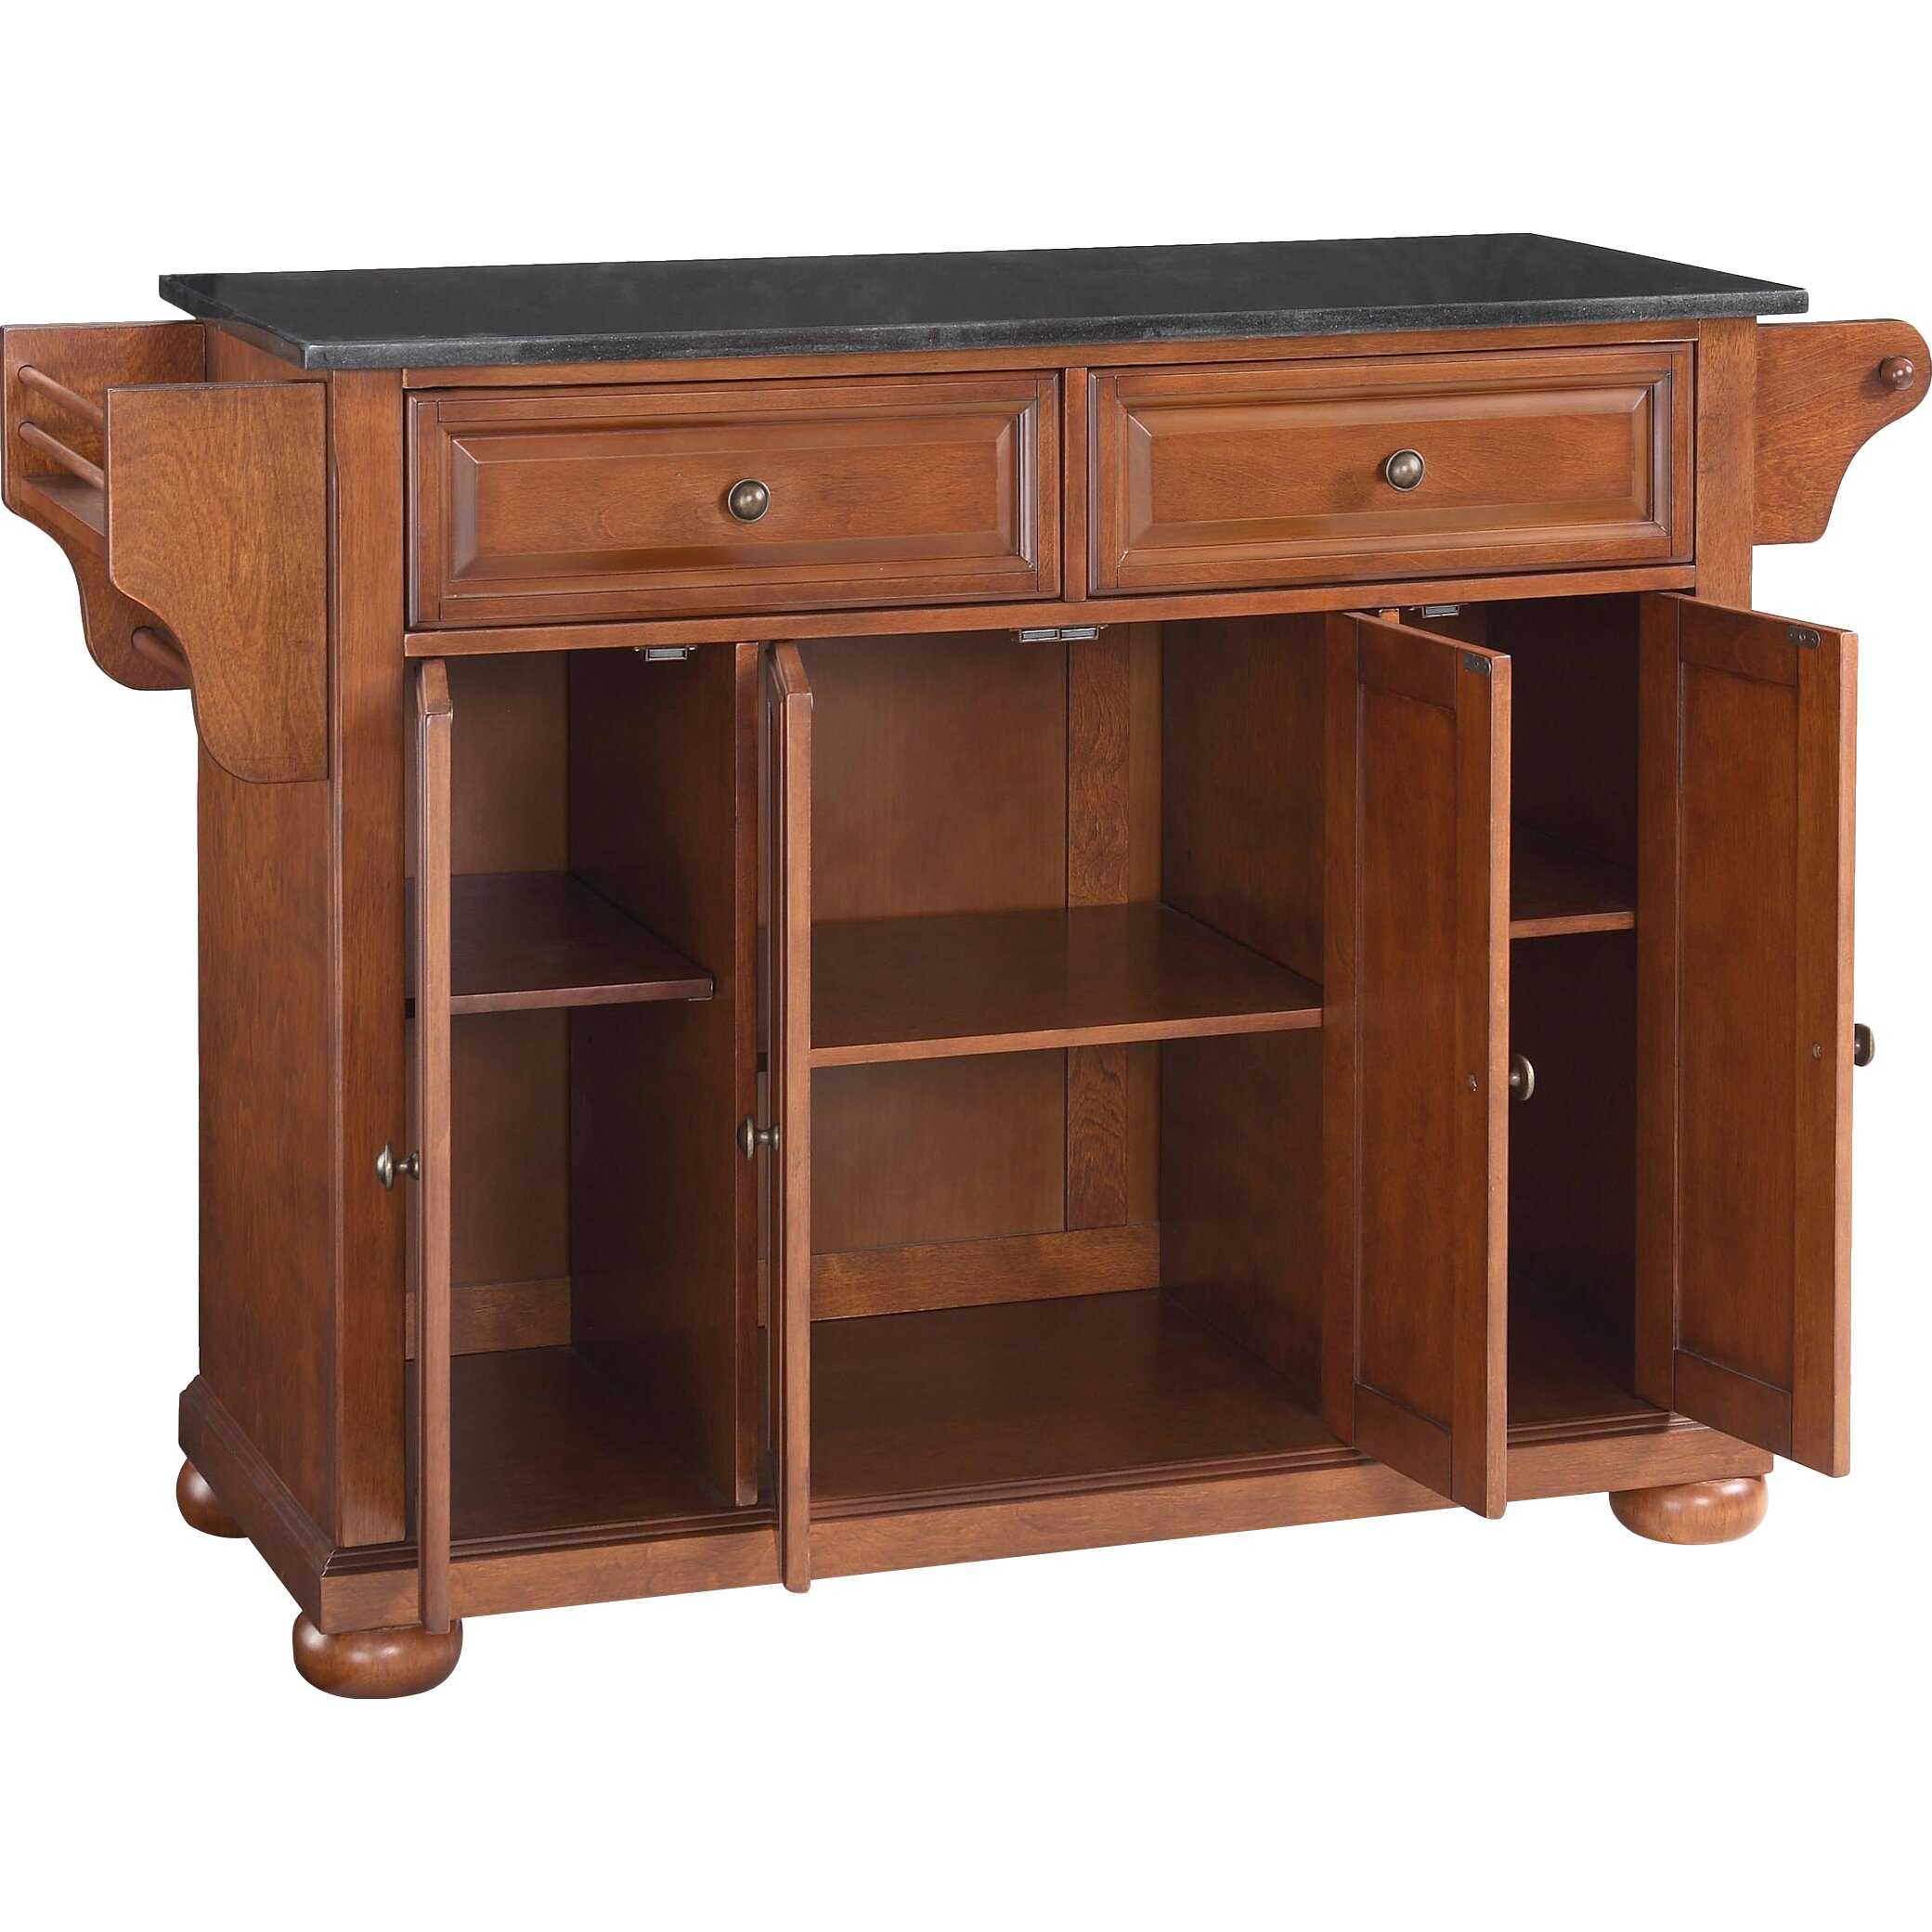 Granite Top Kitchen Darby Home Co Pottstown Kitchen Island With Granite Top Reviews